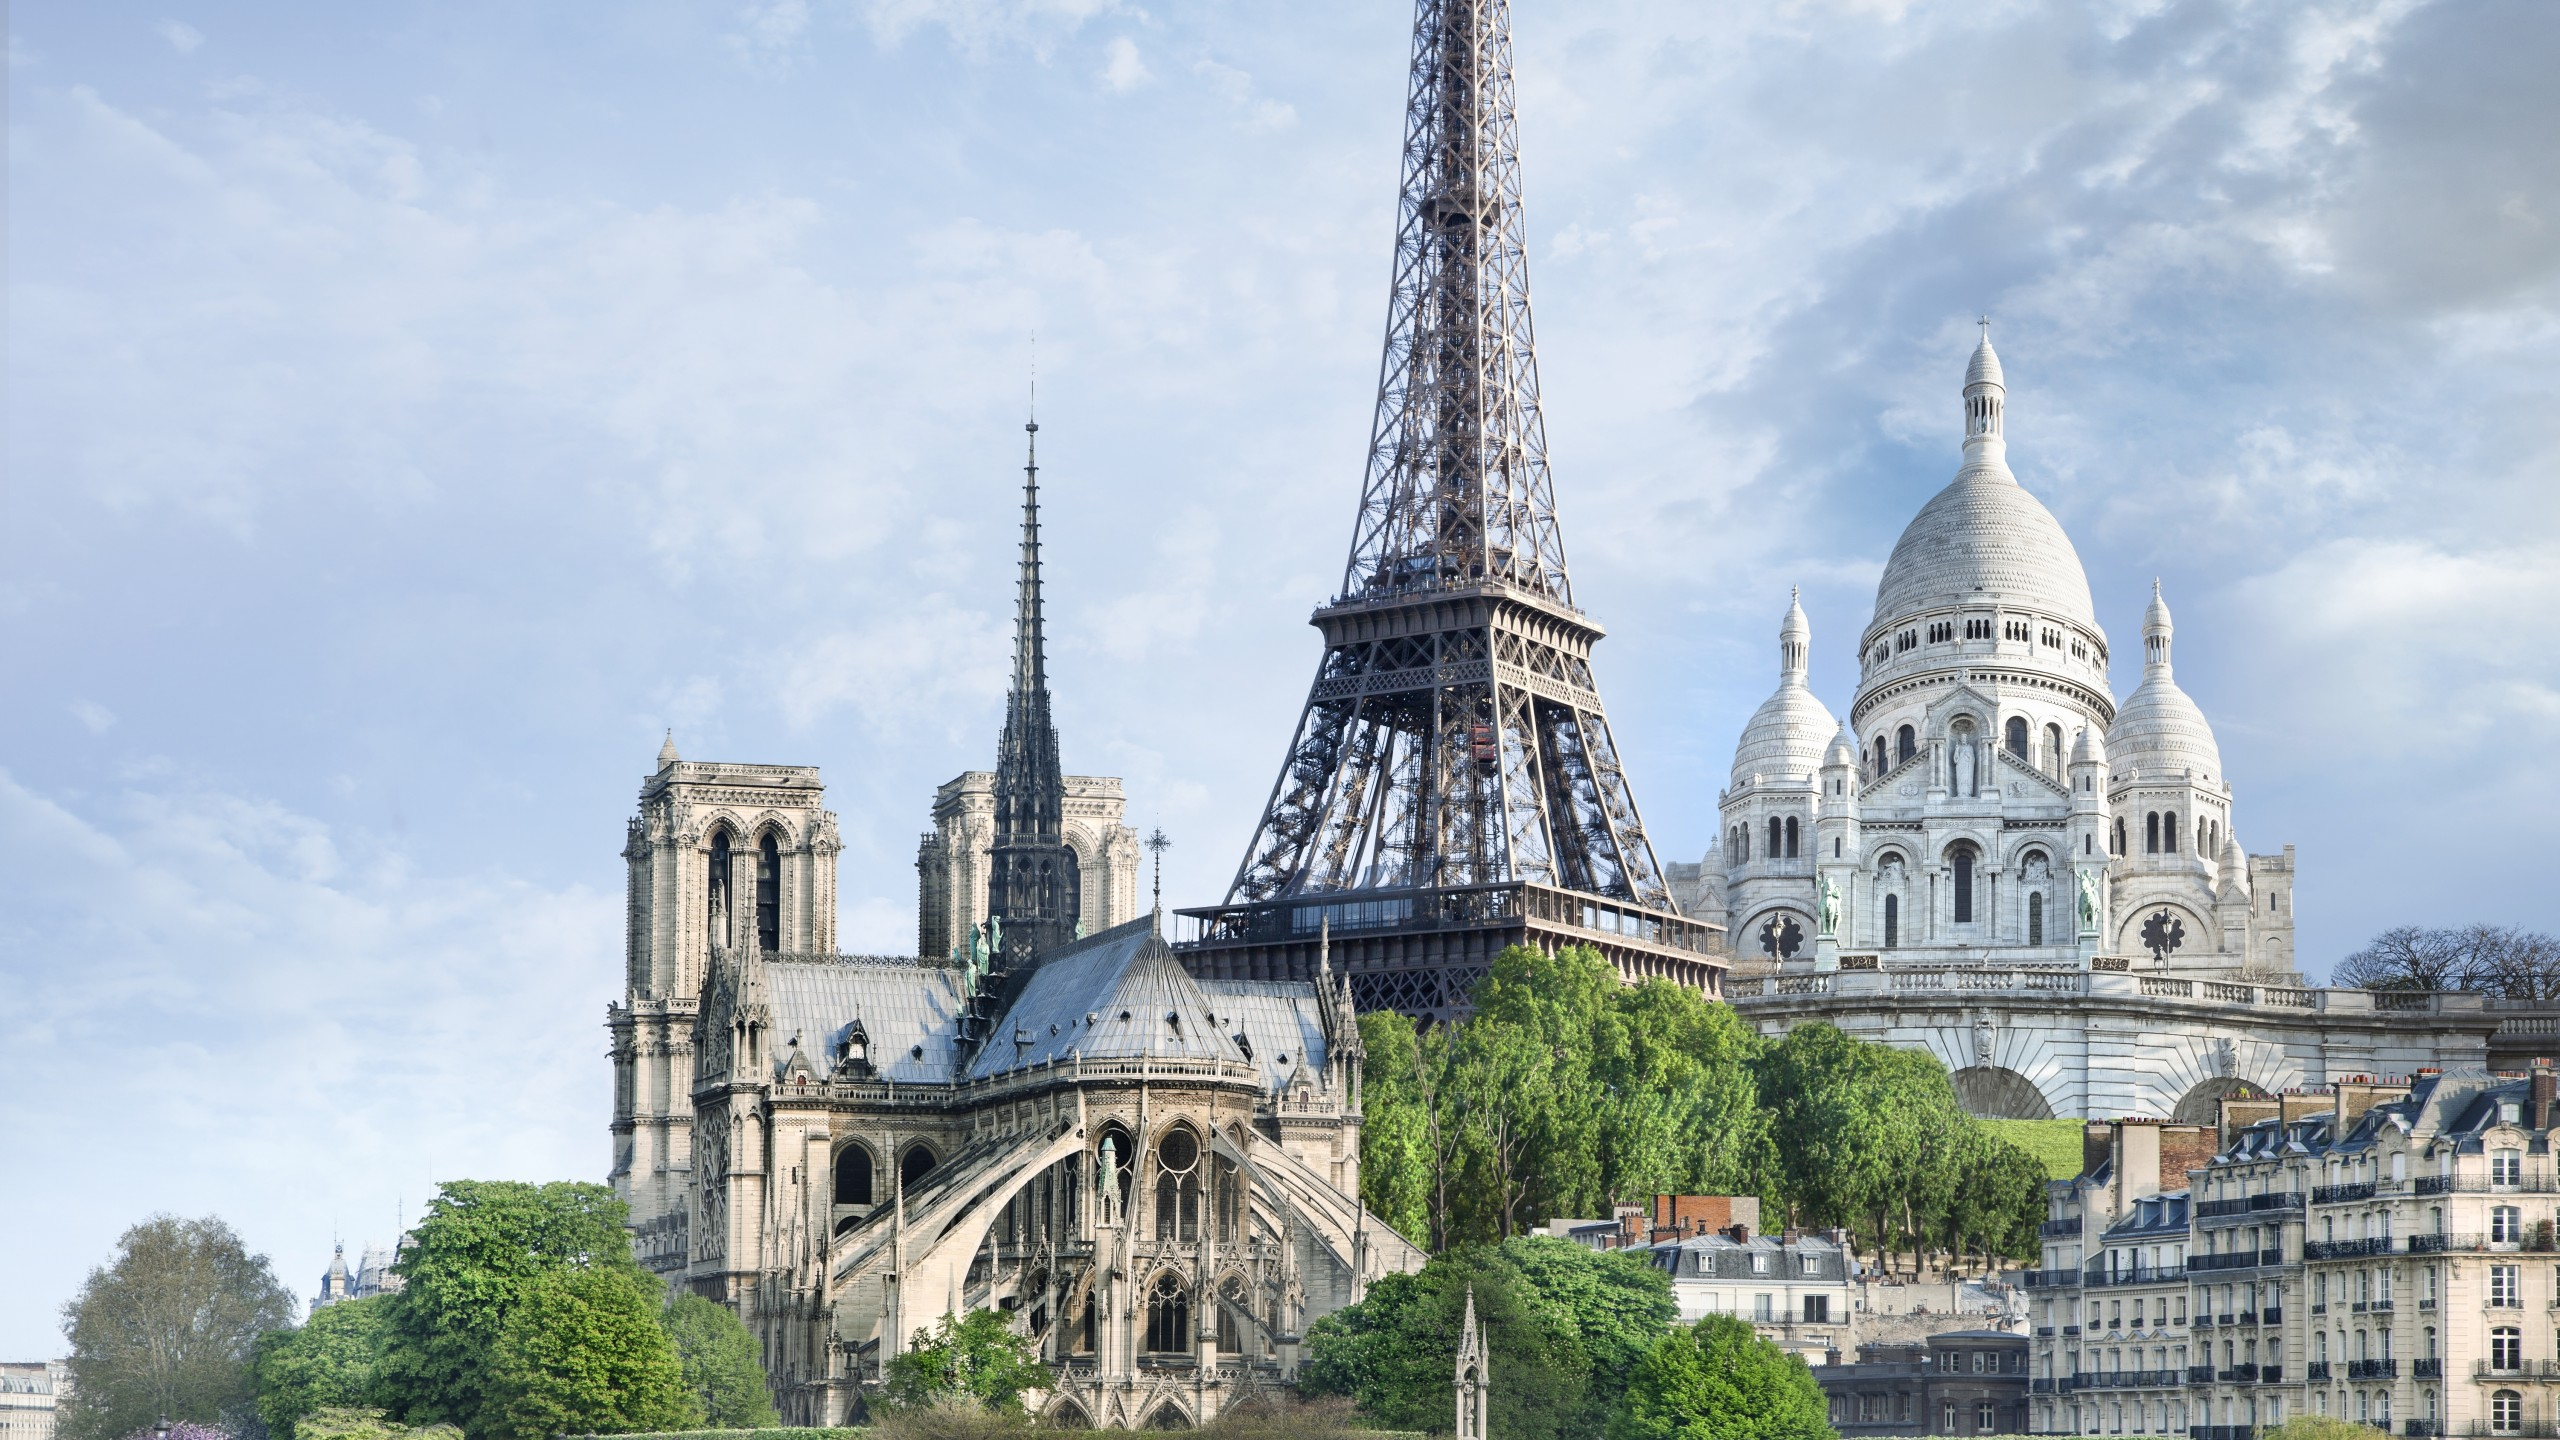 3d Wallpaper Pinterest Wallpaper Paris France Monuments Travel Tourism